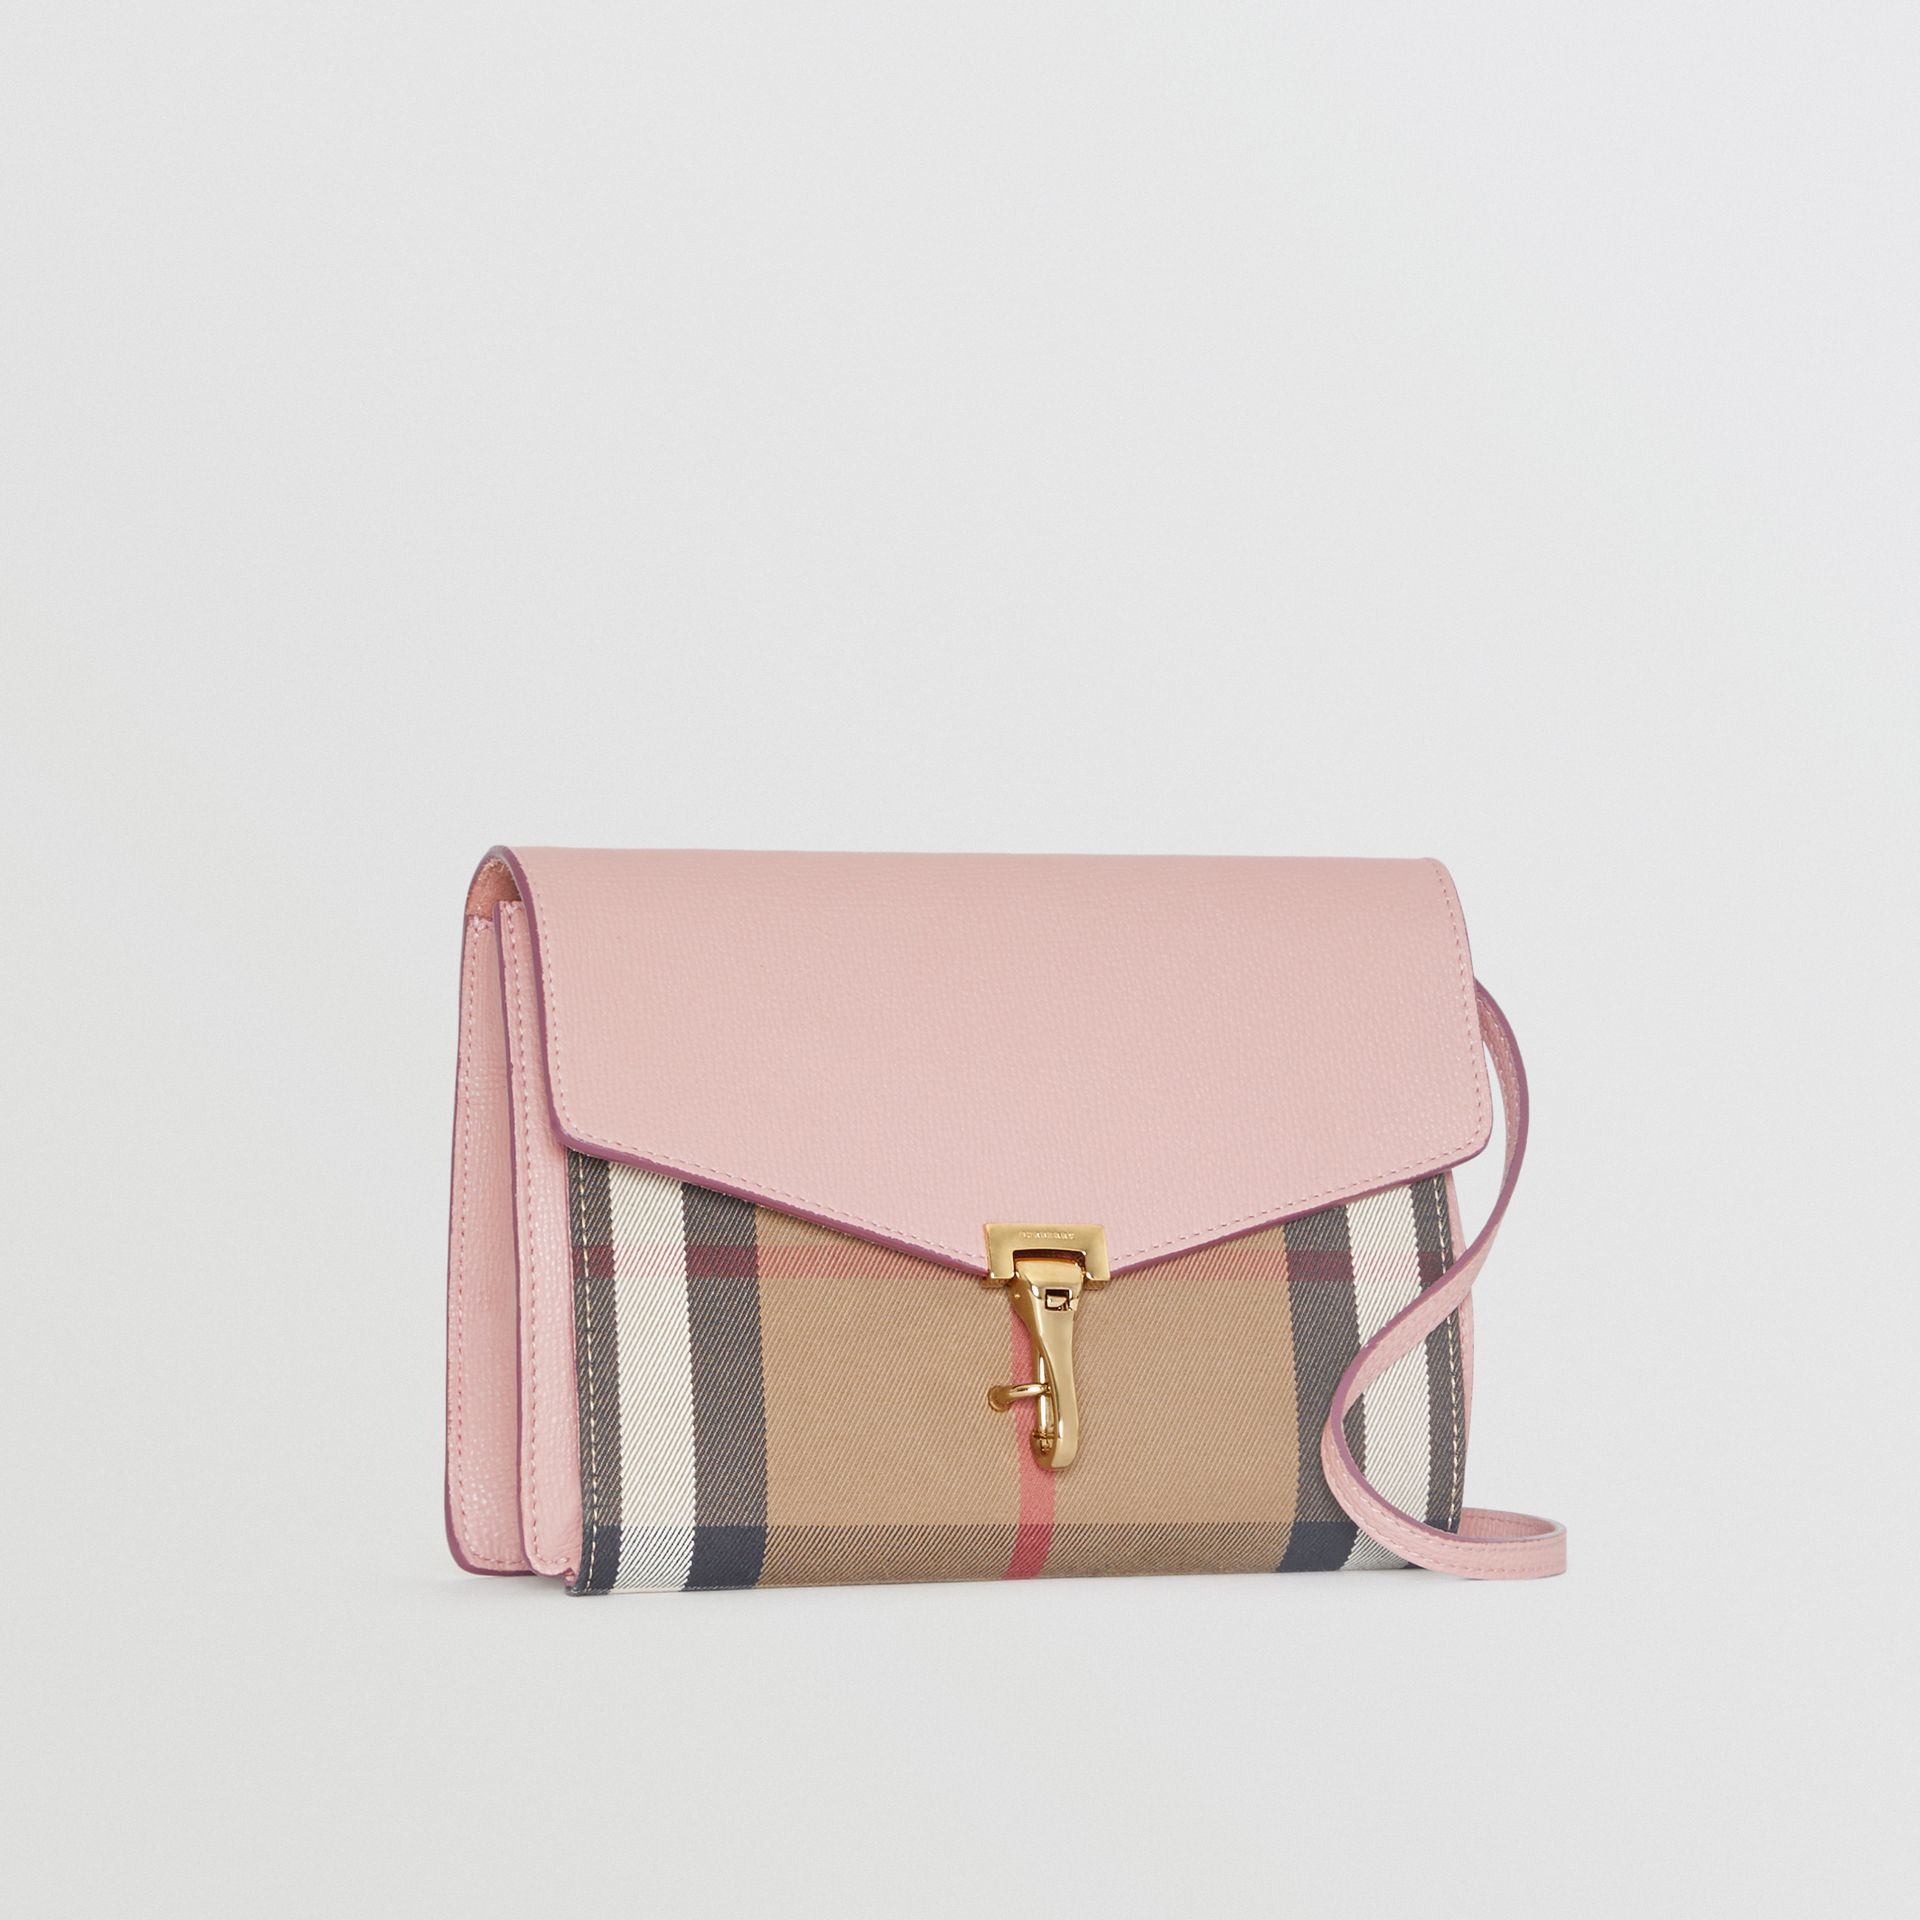 Small Leather and House Check Crossbody Bag in Pale Orchid - Women | Burberry - gallery image 6